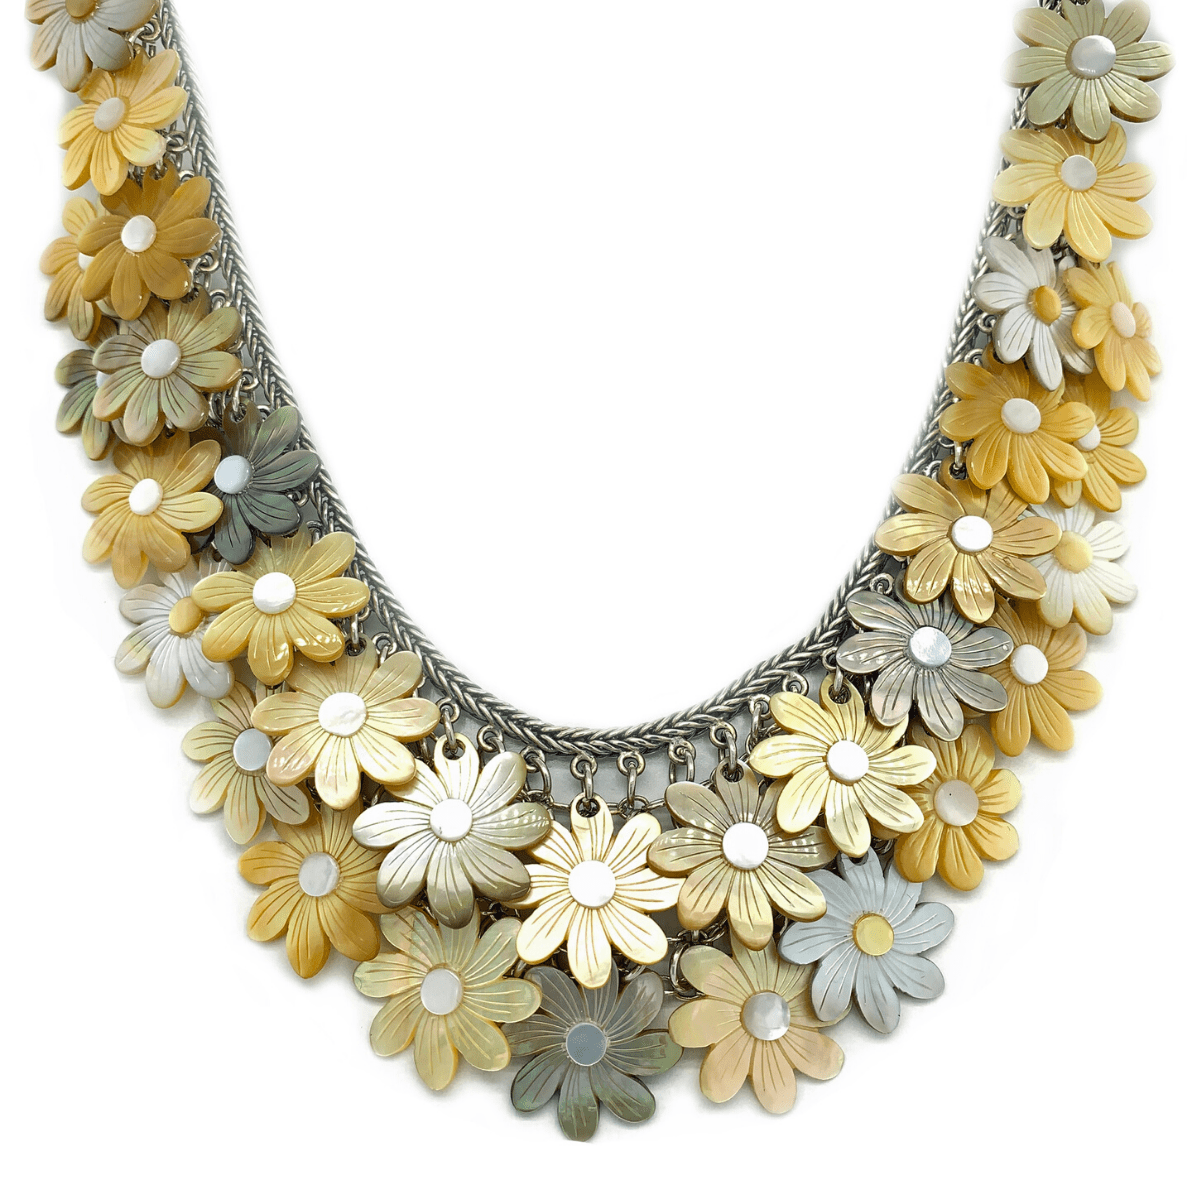 Mother-of-Pearl Daisies & Sterling Silver Mesh Necklace - Qinti - The Peruvian Shop